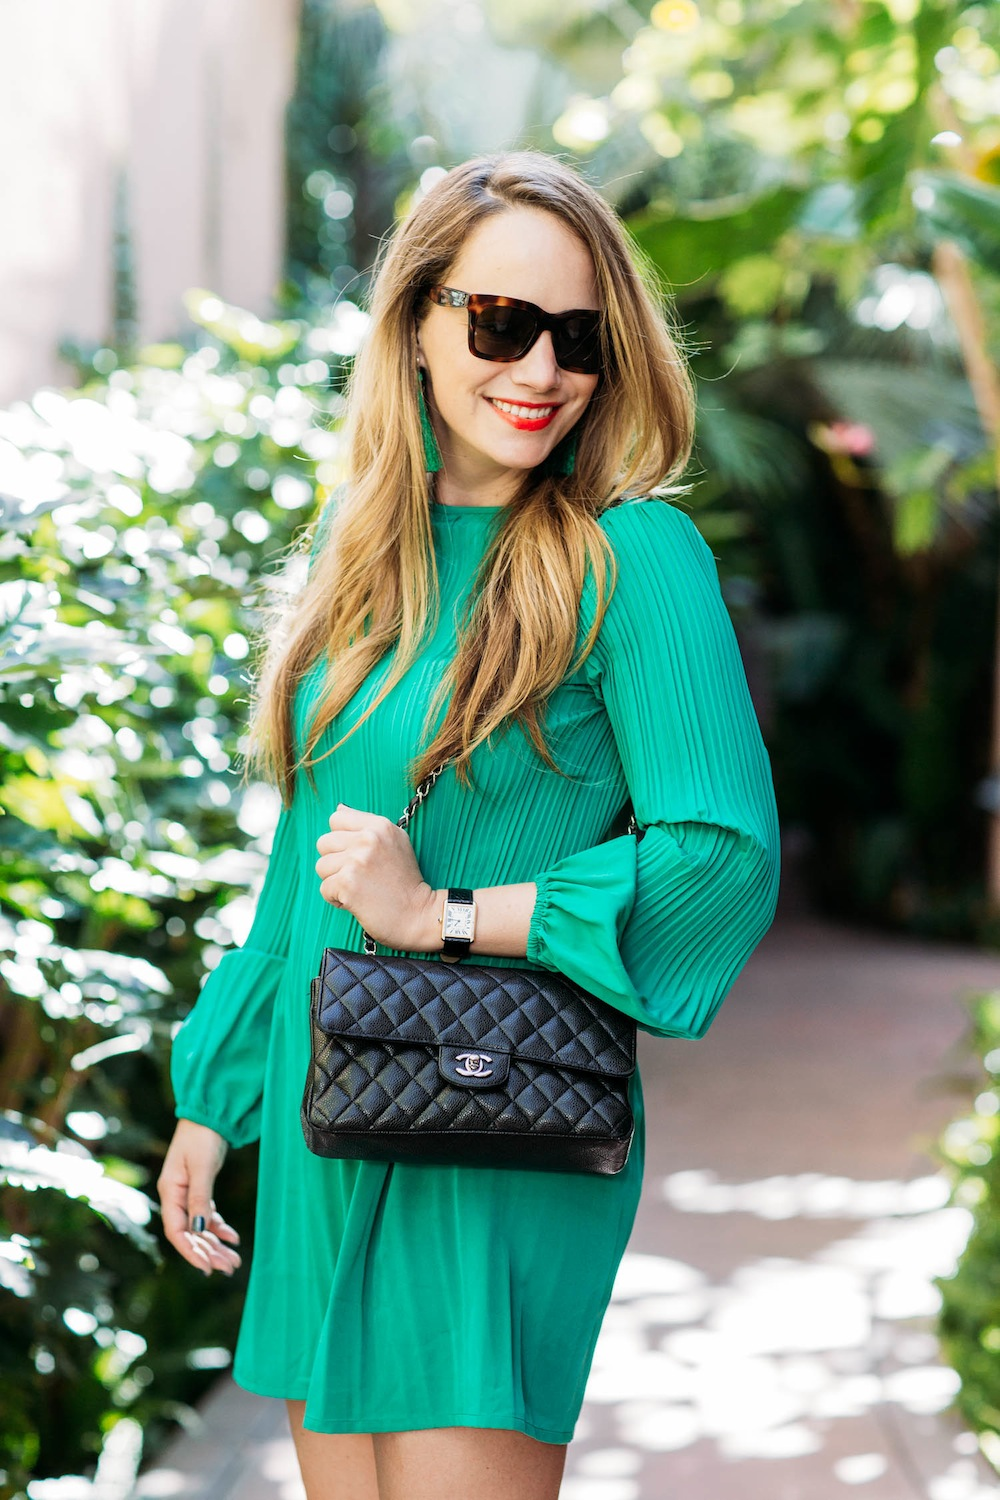 green dress and black chanel bag